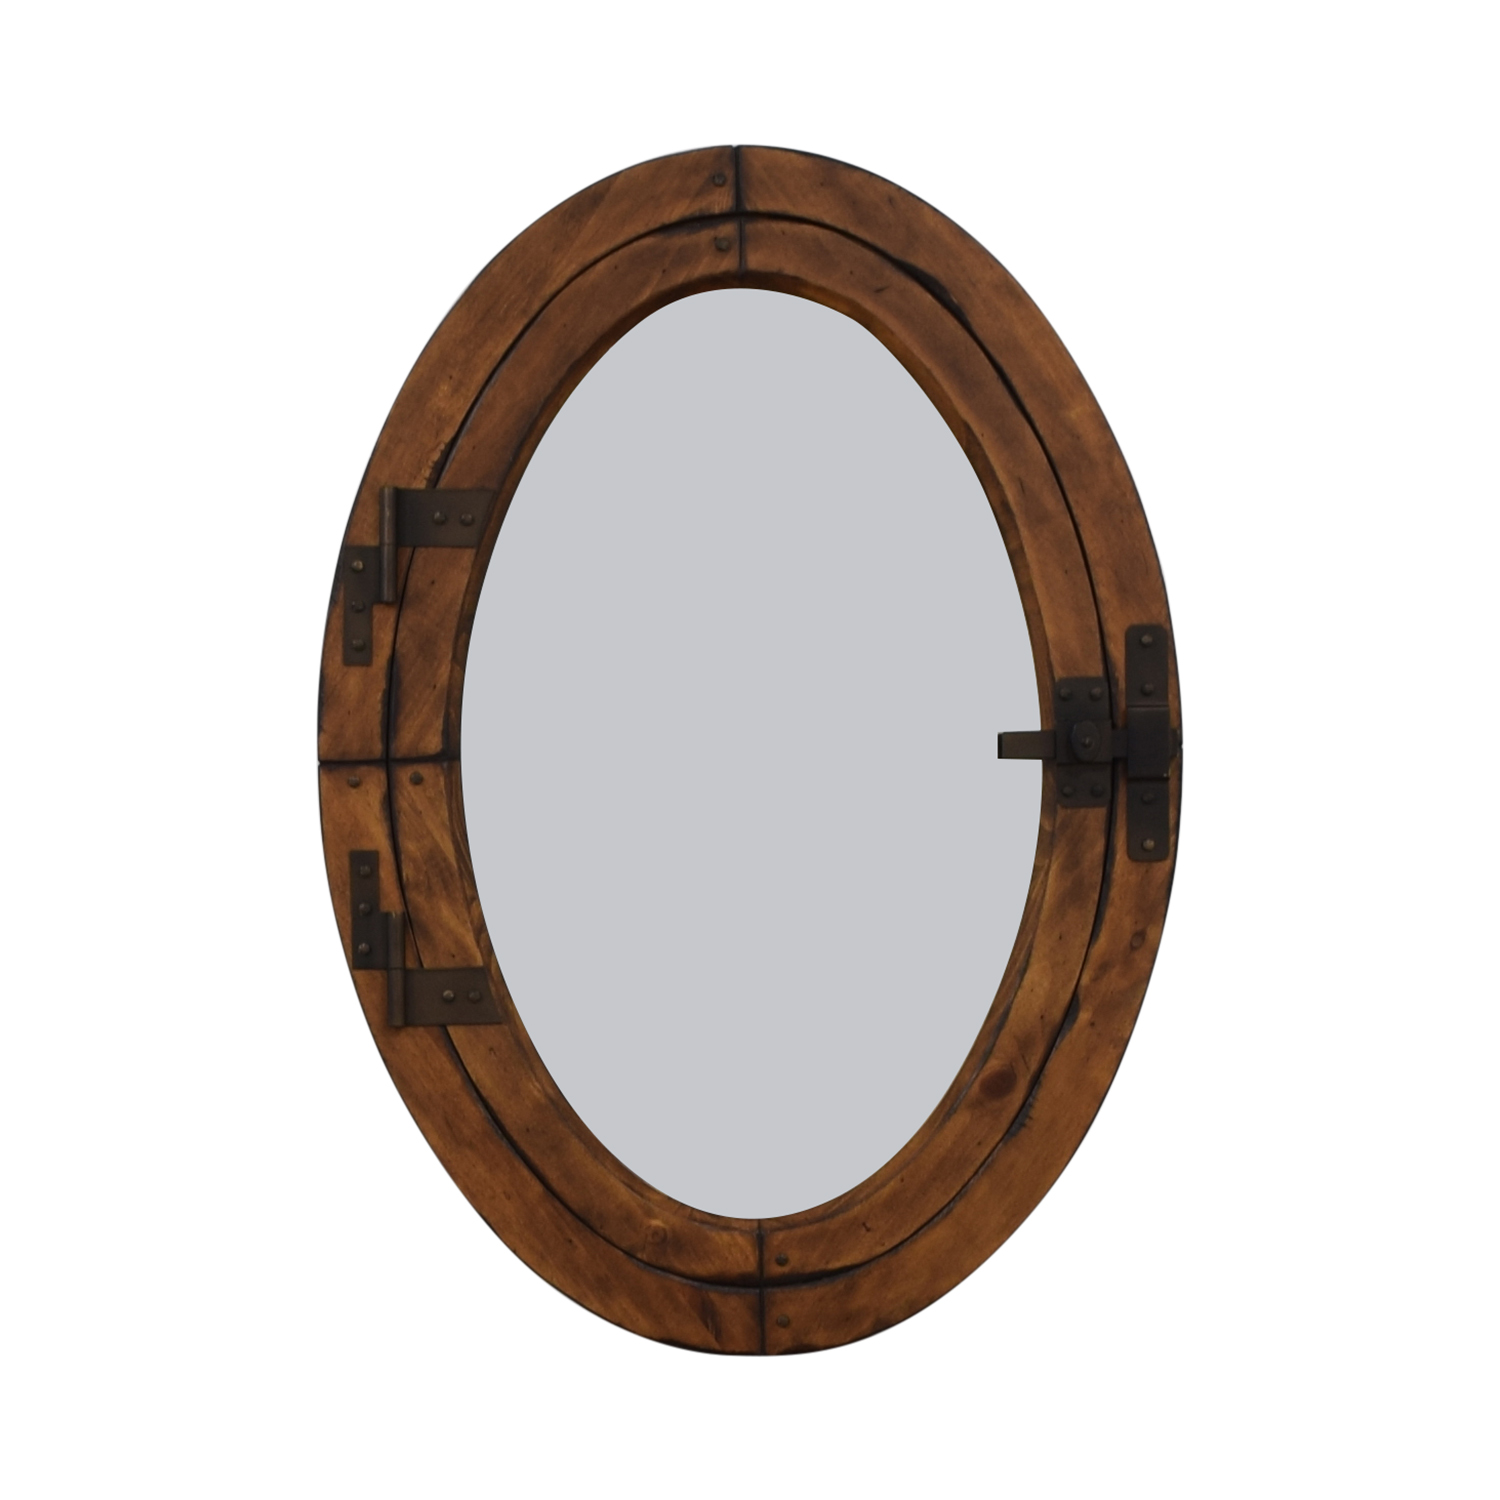 Oval Mirror Wood Frame 67 Off Pottery Barn Pottery Barn Wooden Framed Oval Porthole Mirror Decor